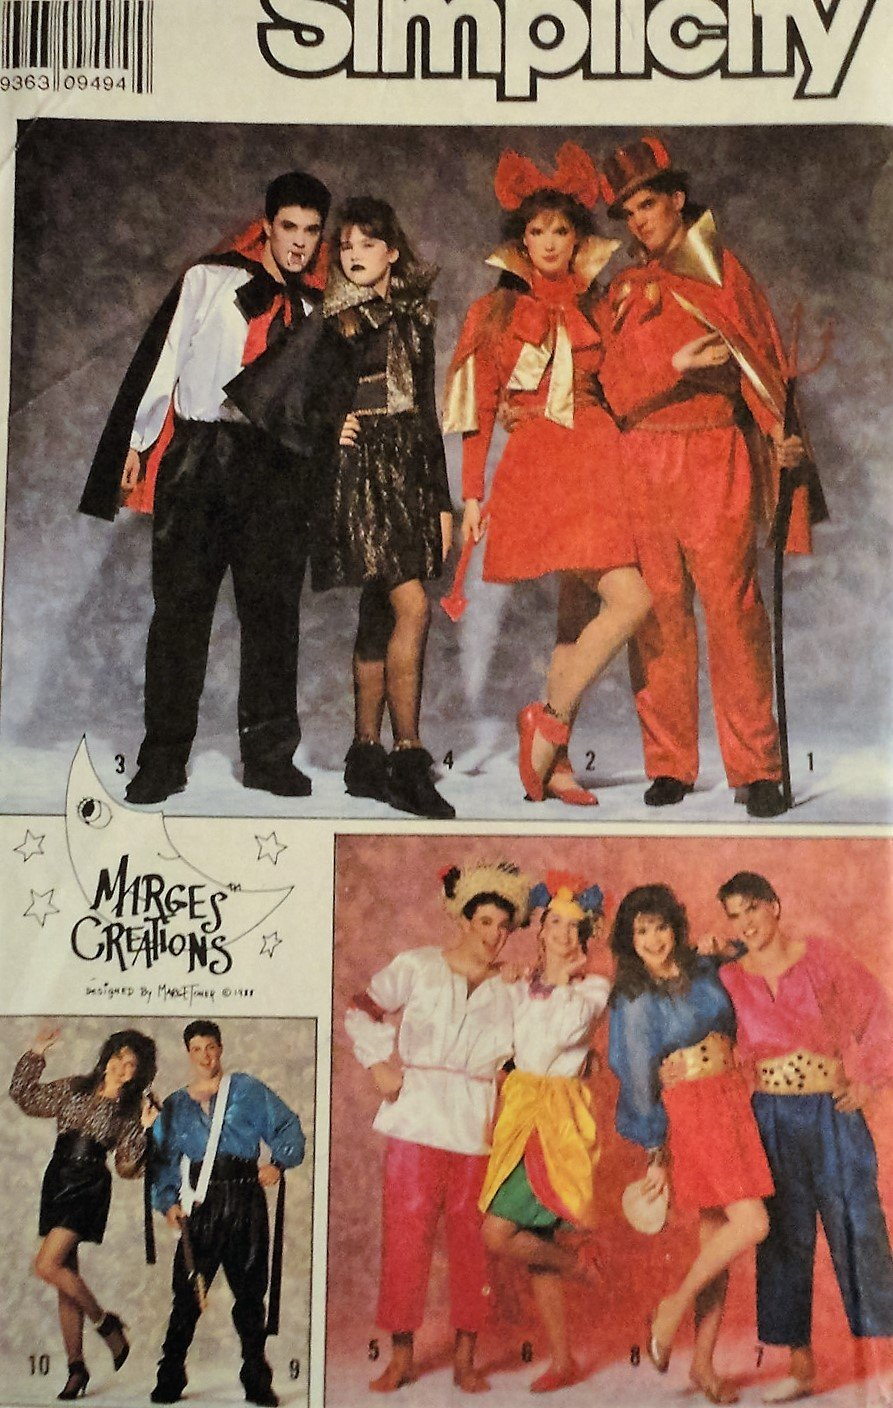 Simplicity 9342 sewing pattern Marges Creations - Misses', Men's or Teen Boys' Costumes. All Sizes